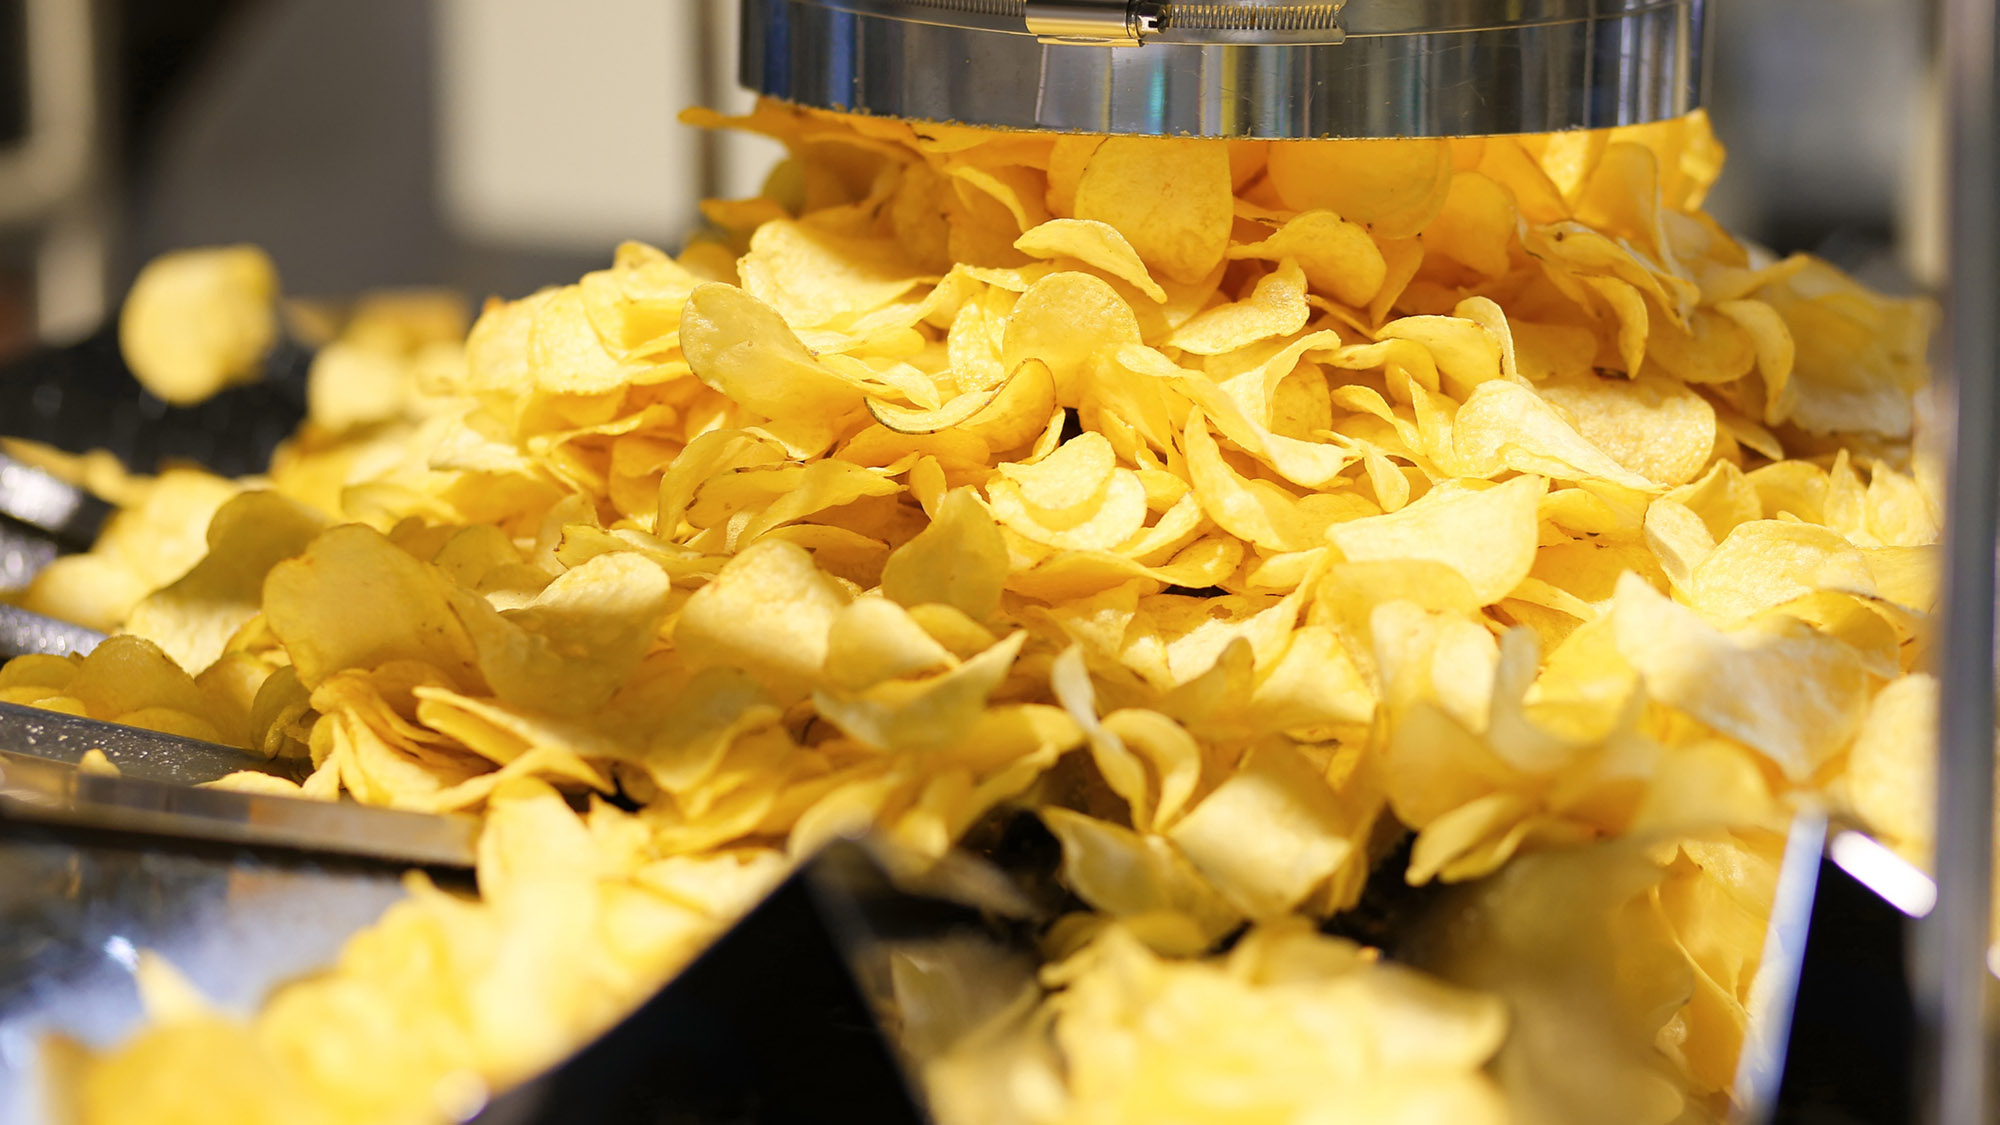 Potato chips production line at the plant. Filling machines for potato chips and snacks.